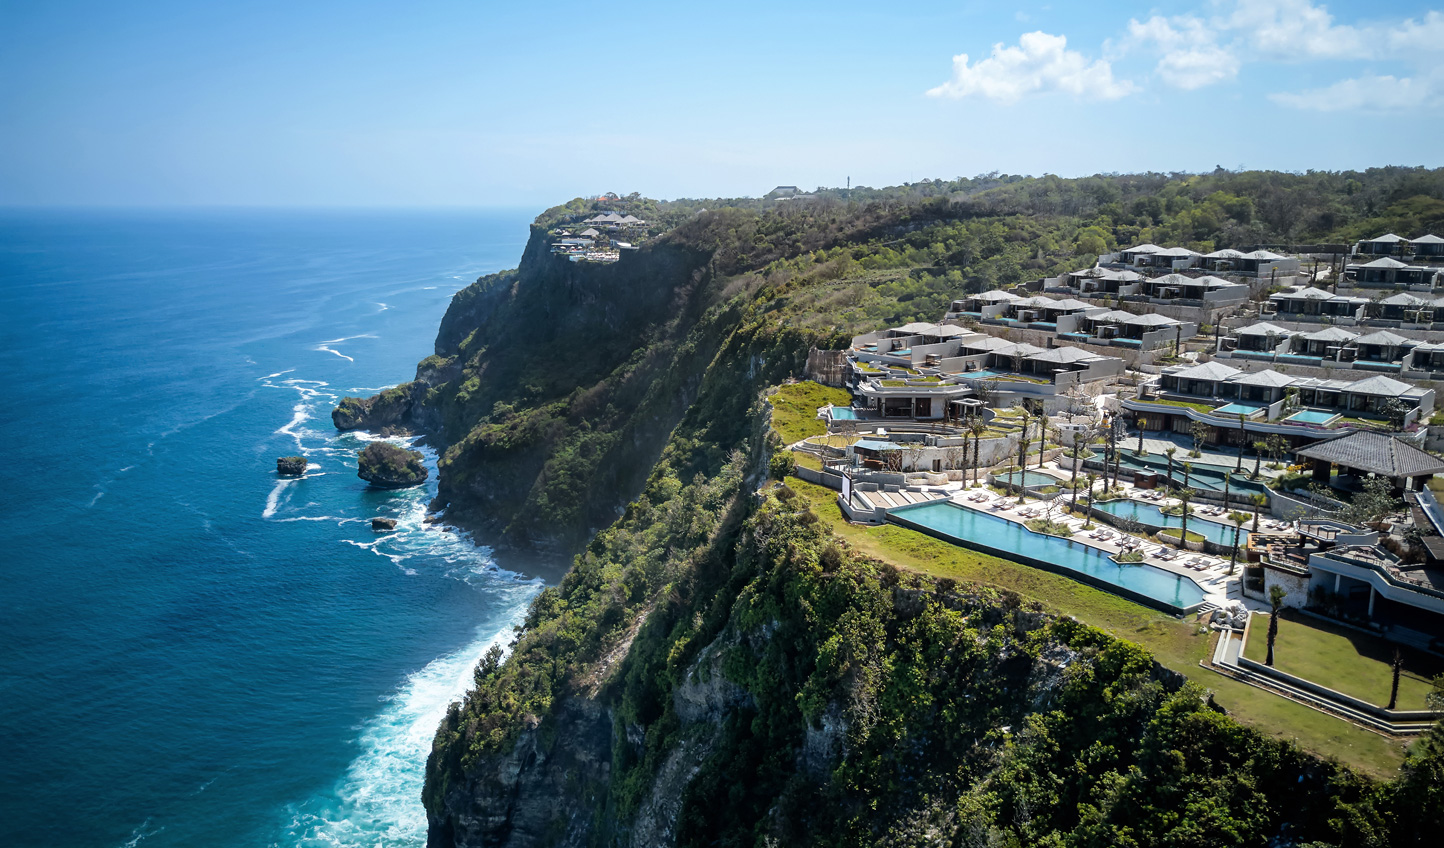 Venture to Bali's southernmost tip and uncover something extraordinary at Six Senses Uluwatu